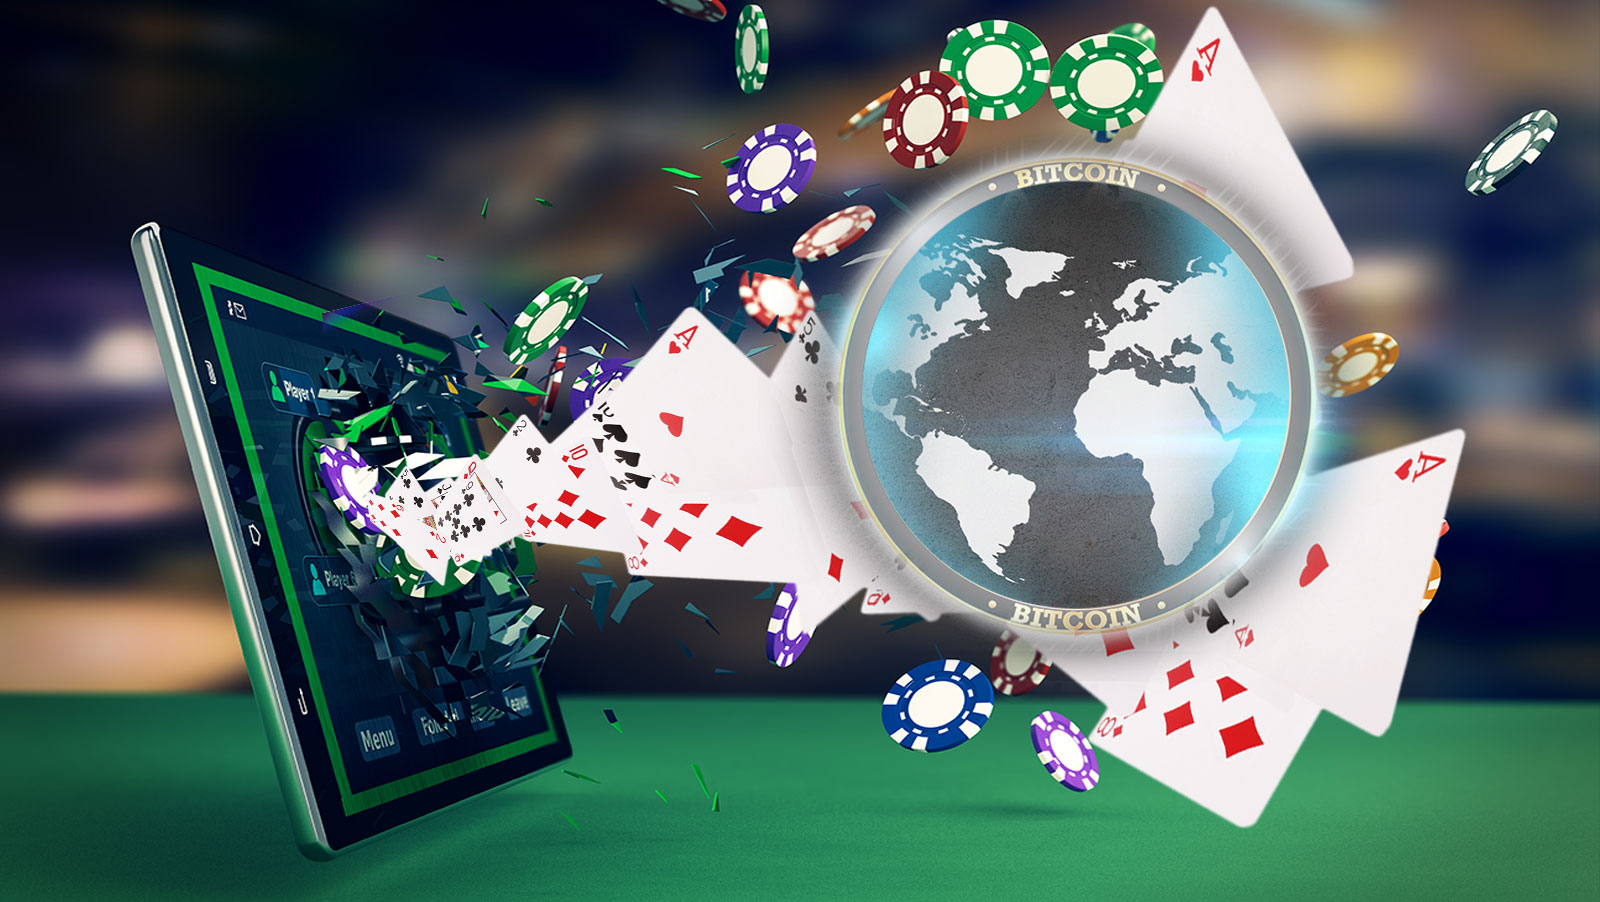 Good features of online poker